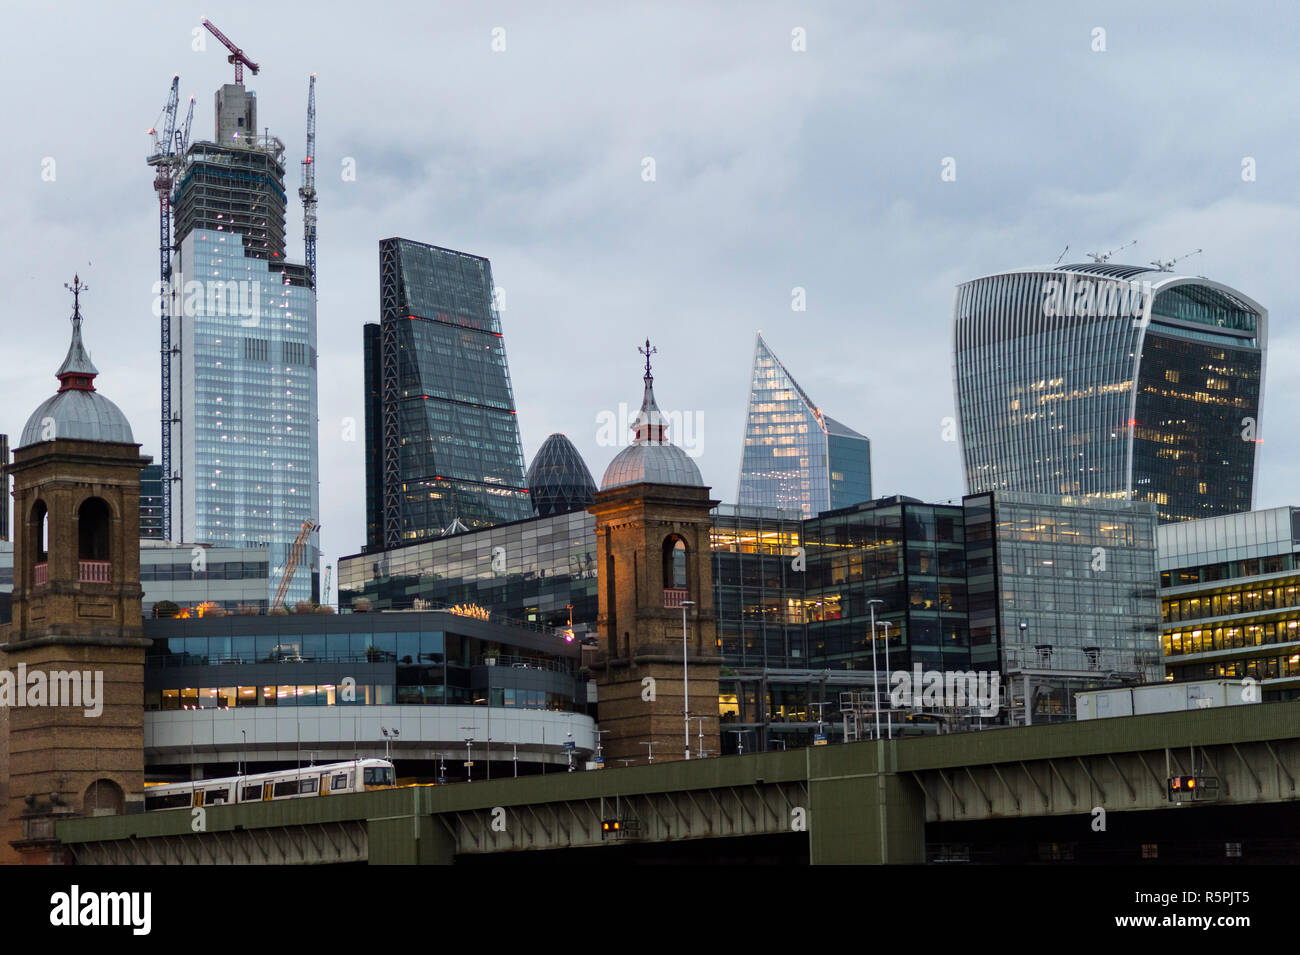 London, UK. 2nd Dec, 2018. Construction on 22 Bishopsgate (L) in progress in The City of London. Financial institutions face considerable uncertainty in the run up to the formal date of Brexit in March 2019, with several companies taking the decision to relocate staff to a European base, but construction on new skyscrapers providing additional office space in the area continues. Credit: Stephen Chung/Alamy Live News - Stock Image